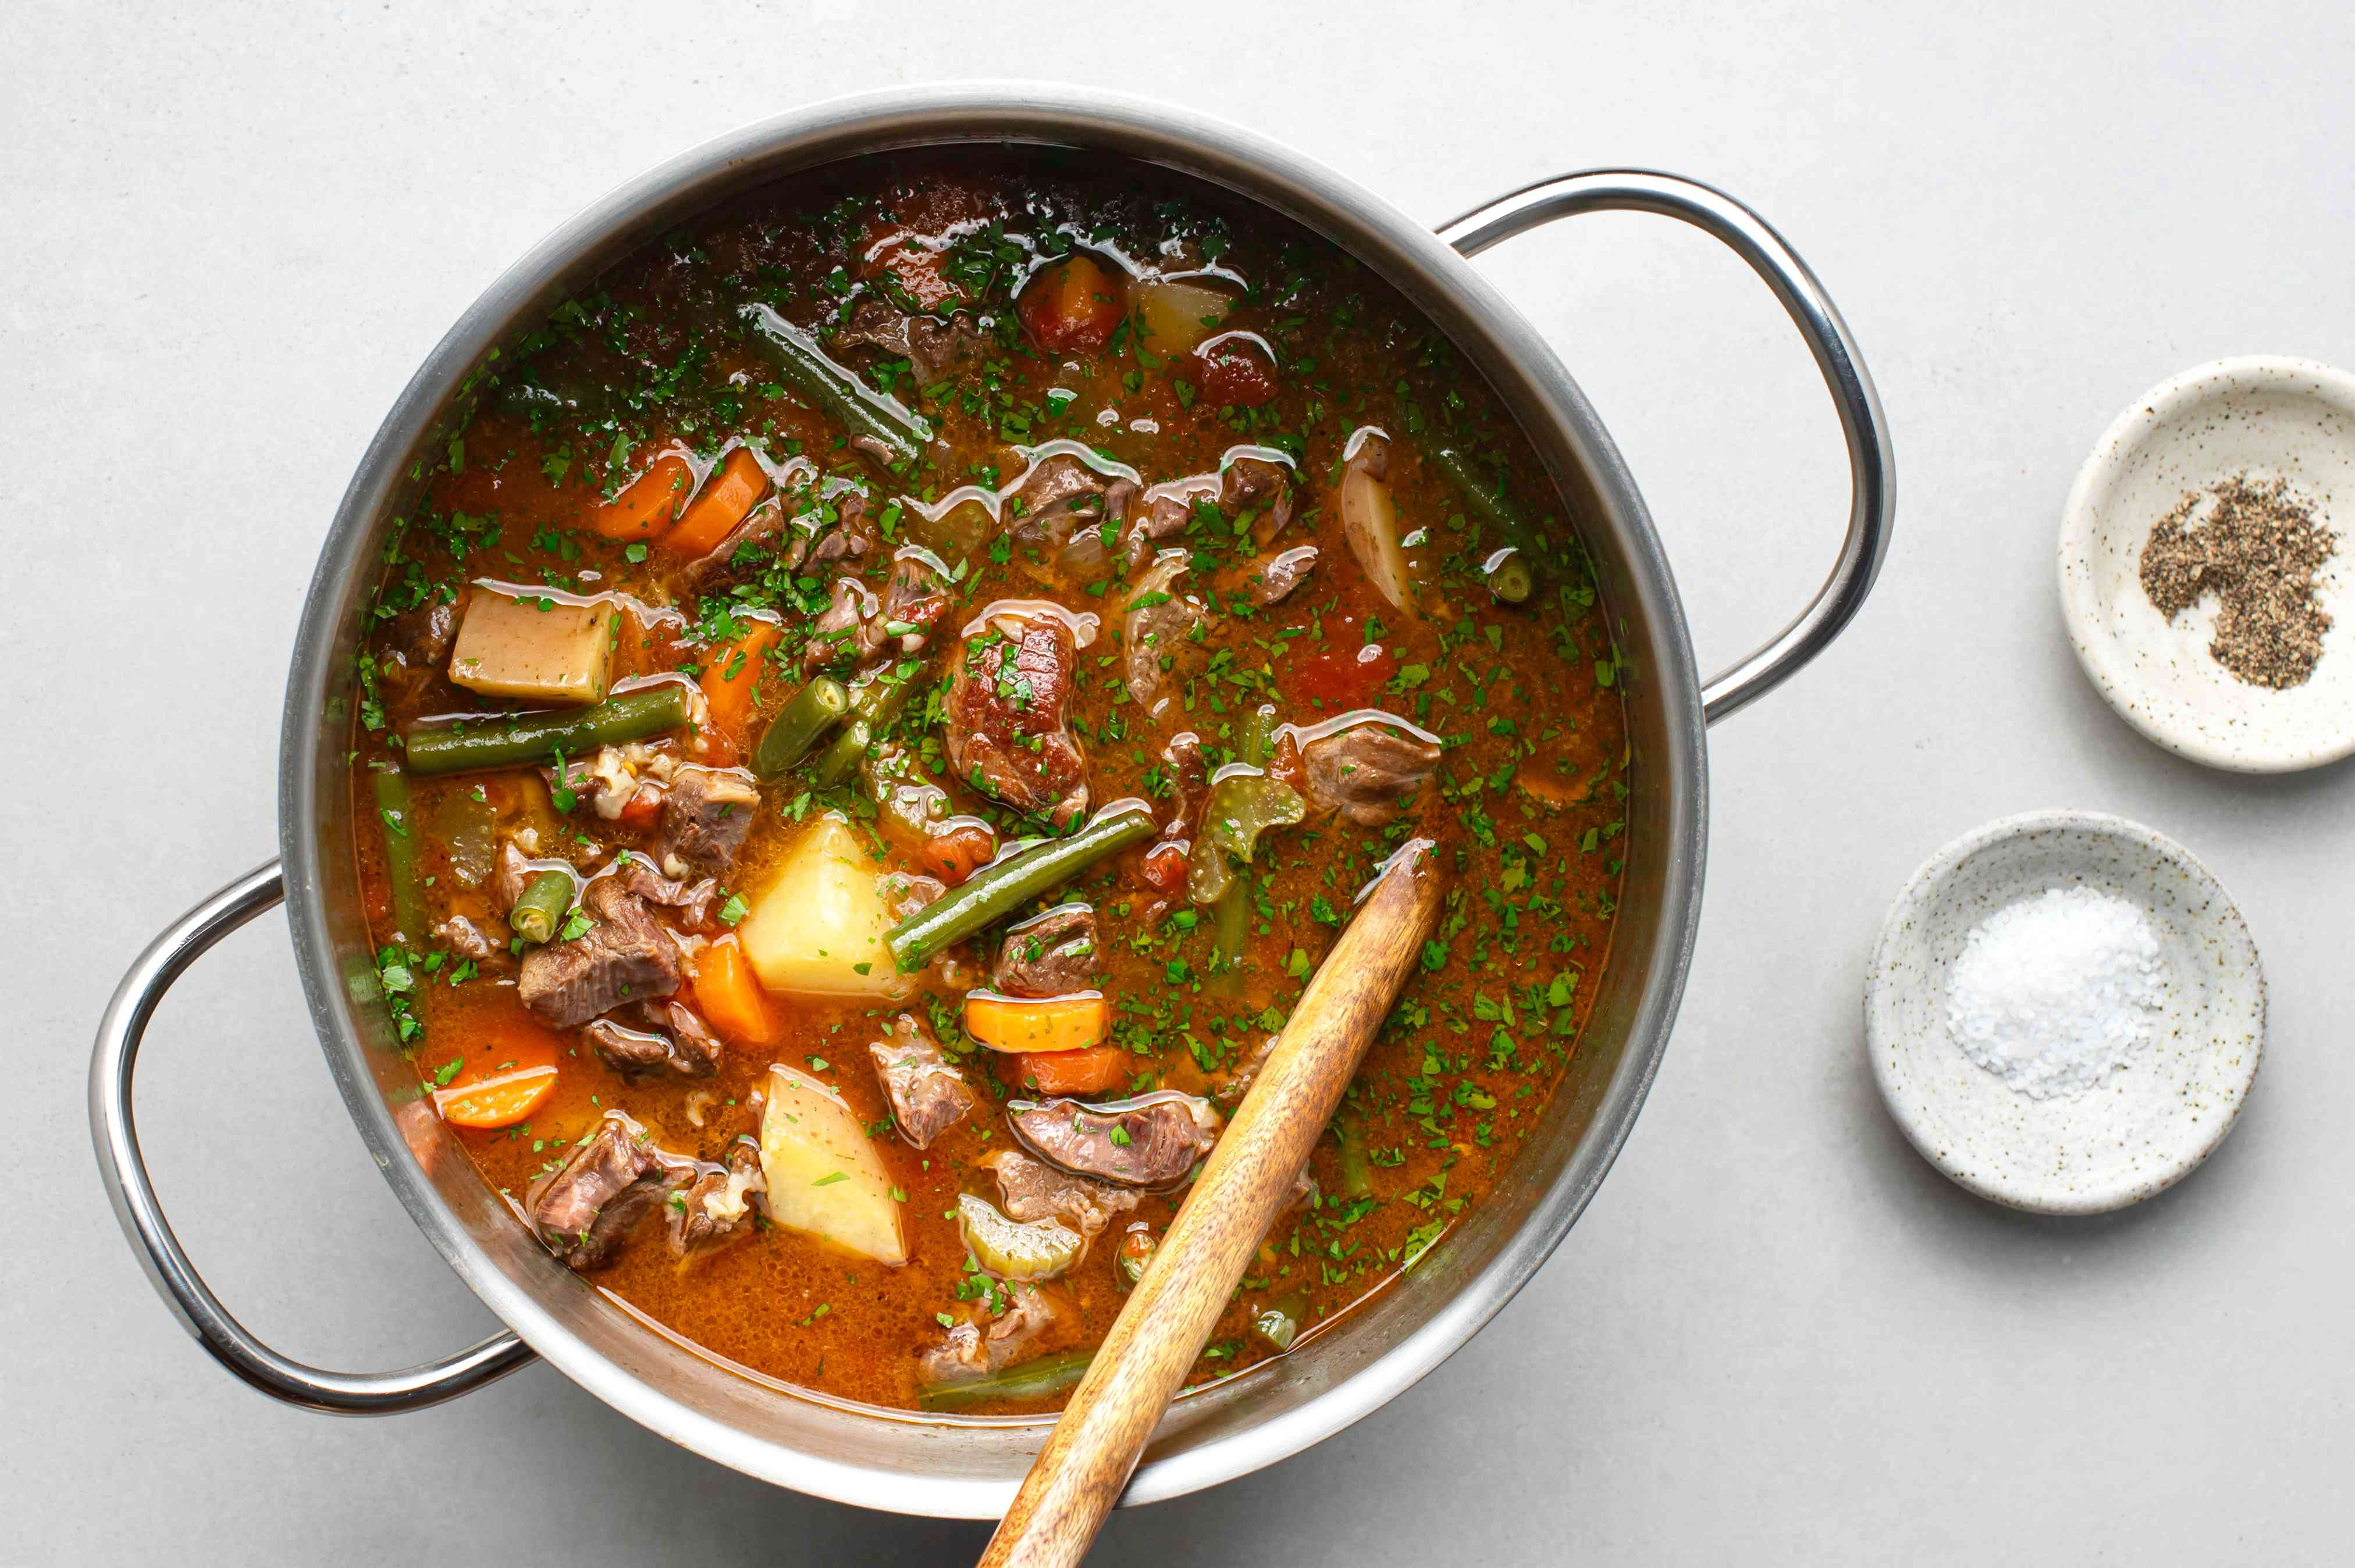 Old-Fashioned Vegetable Beef Soup, with parsley, salt and pepper